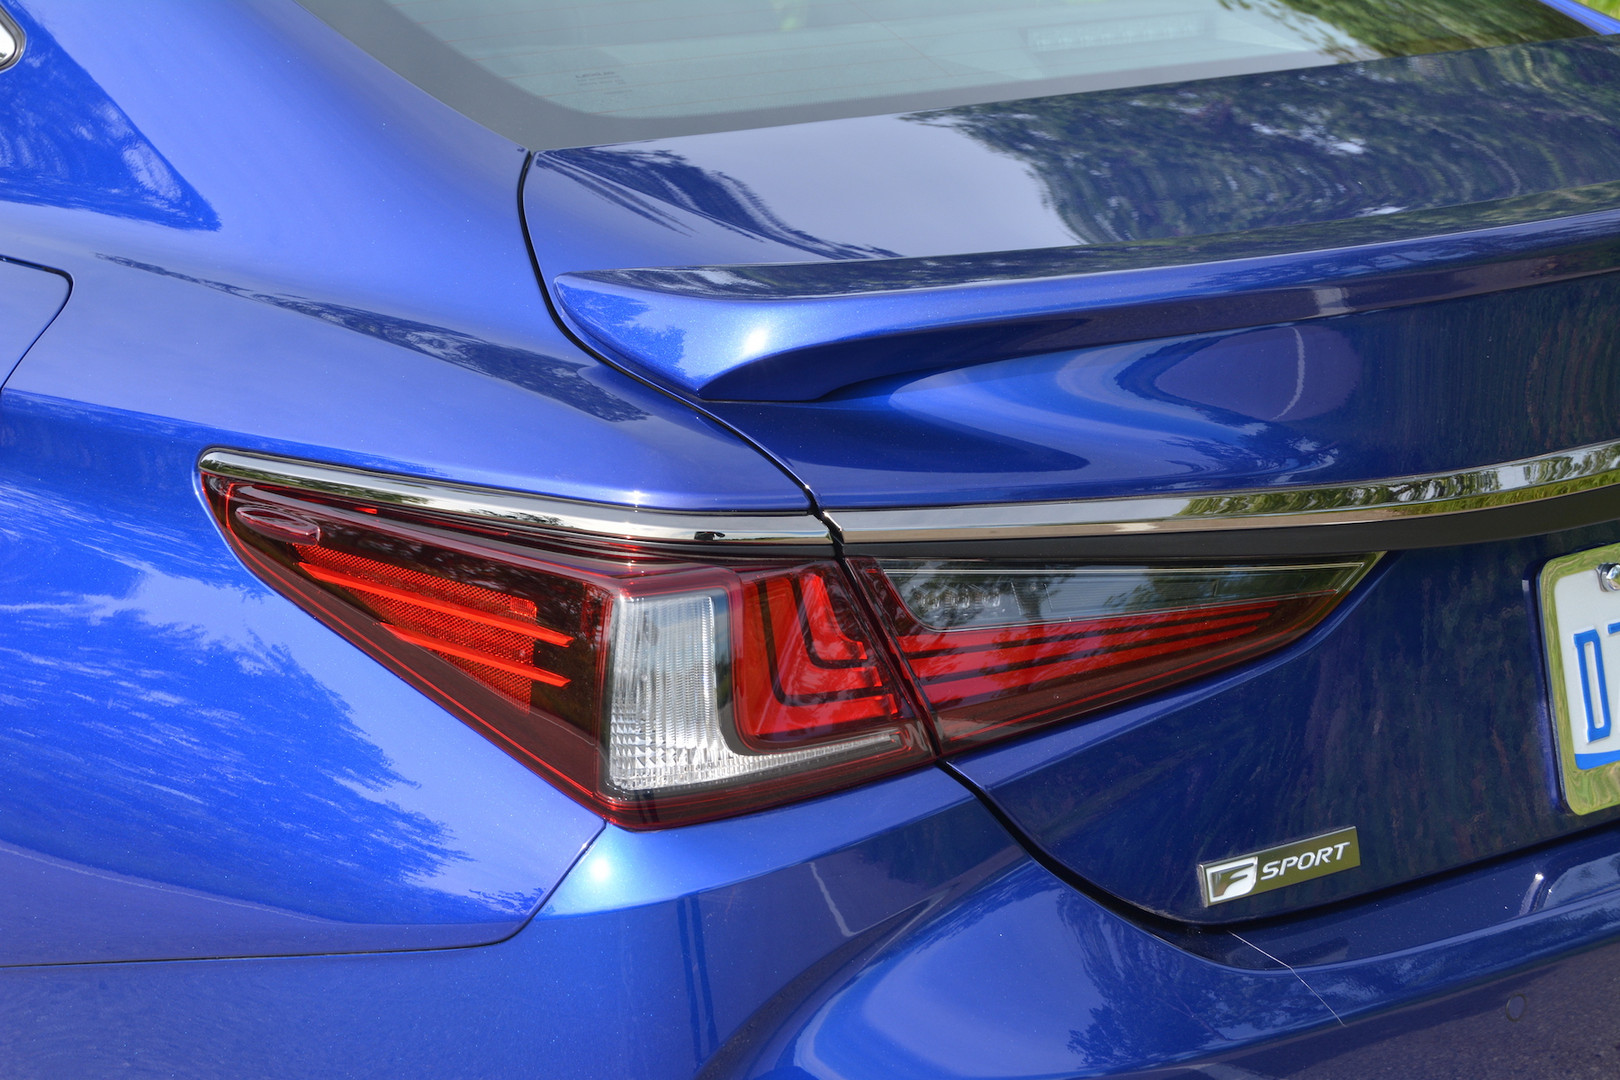 2019 Lexus ES 350 F Sport Rear Lights